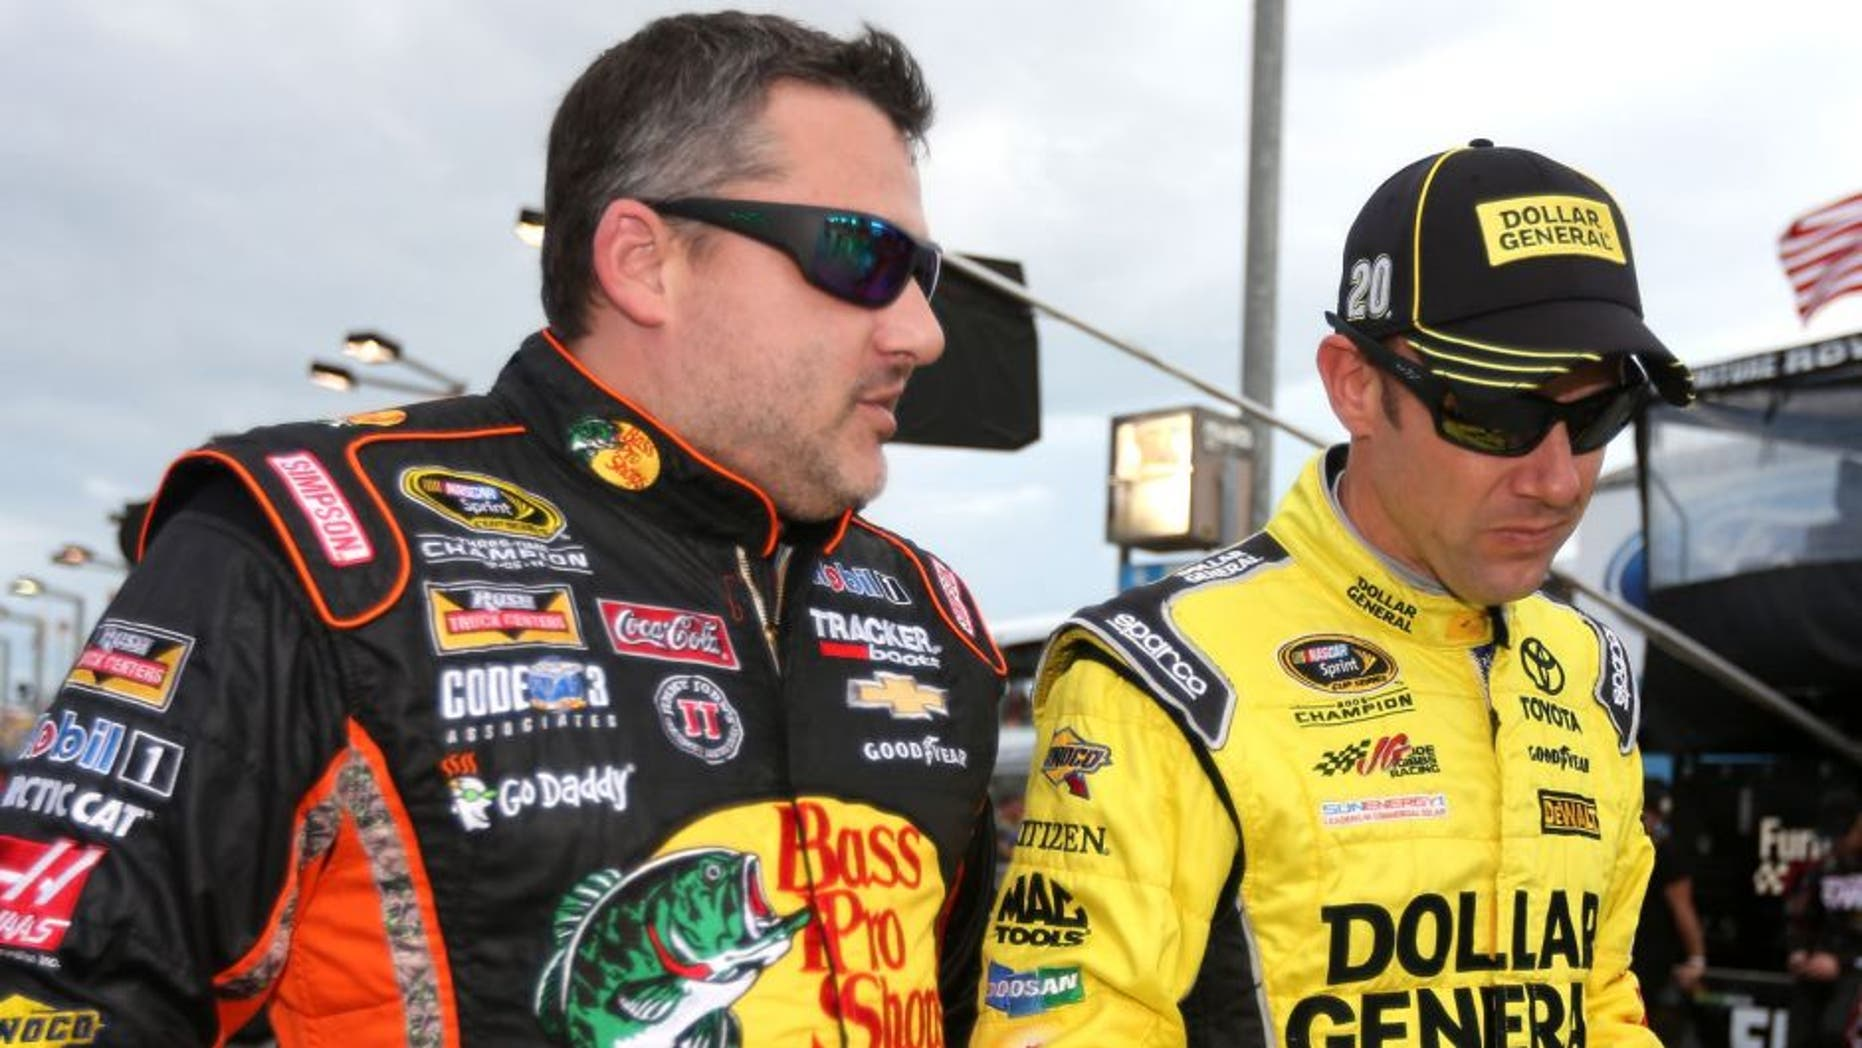 HOMESTEAD, FL - NOVEMBER 22: Tony Stewart, driver of the #14 Bass Pro Shops/Mobil 1 Chevrolet, talks to Matt Kenseth, driver of the #20 Dollar General Toyota, during the NASCAR Sprint Cup Series Ford EcoBoost 400 at Homestead-Miami Speedway on November 22, 2015 in Homestead, Florida. (Photo by Chris Graythen/Getty Images)